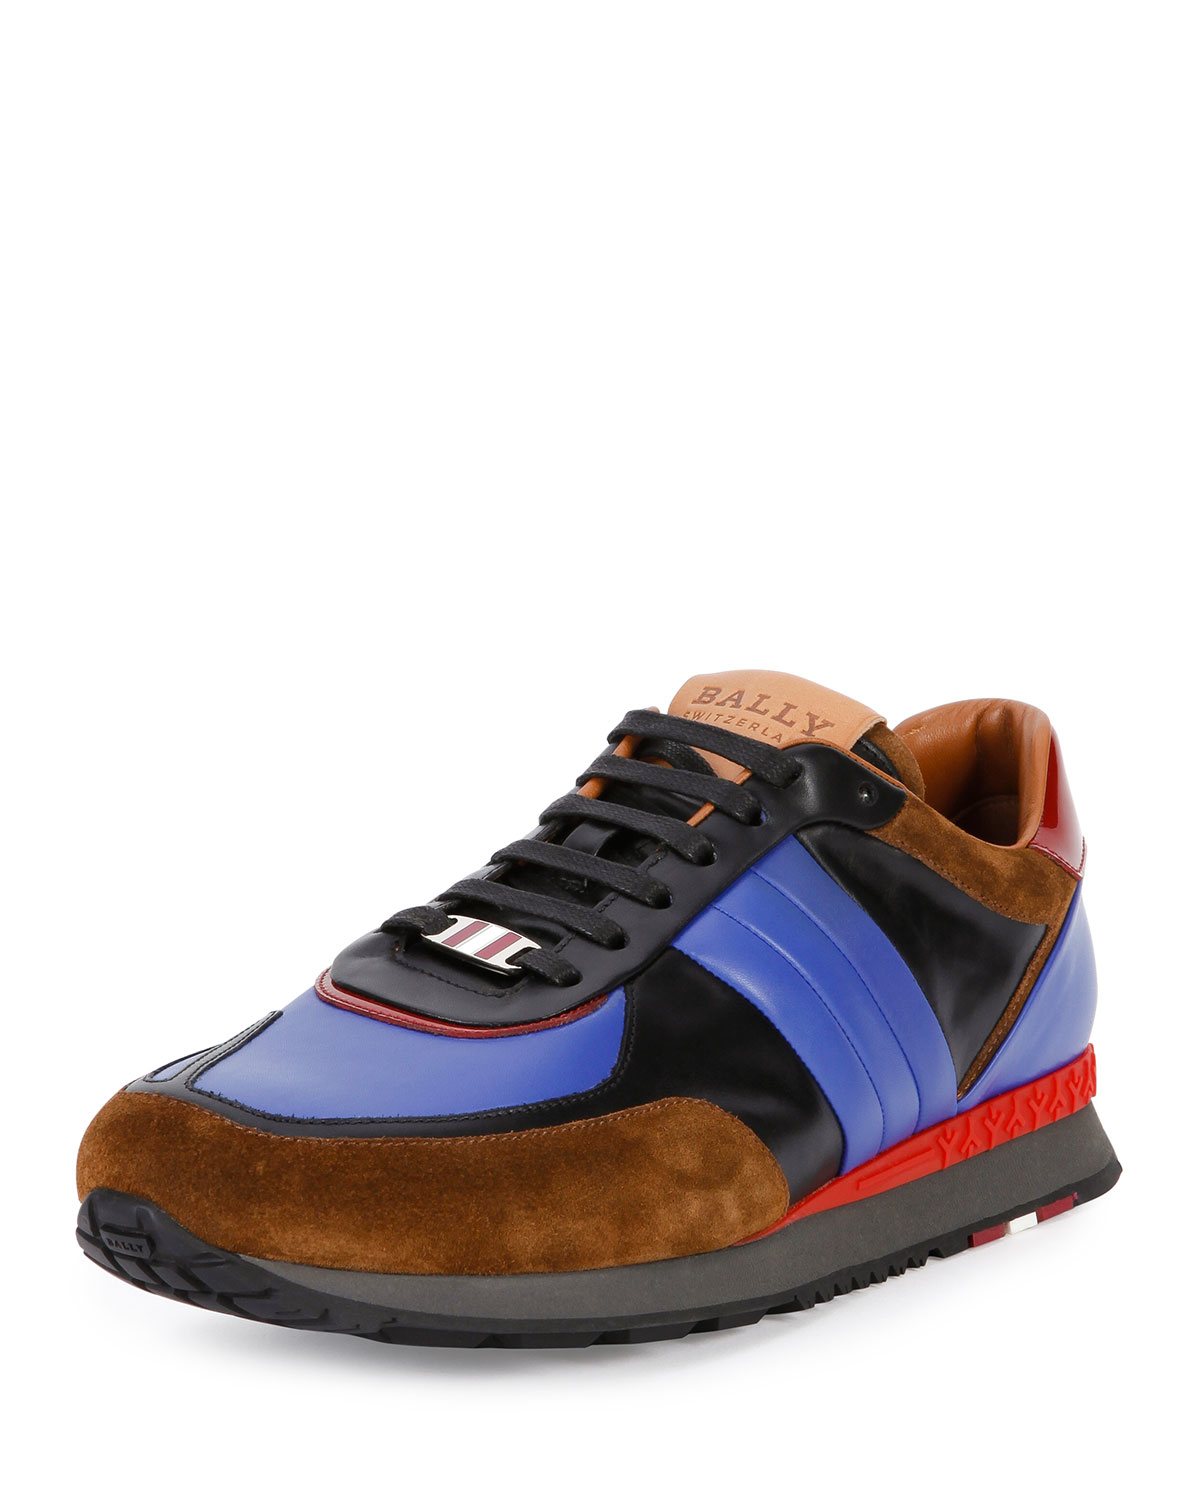 Bally Ascar Leather Sneakers in Blue for Men | Lyst